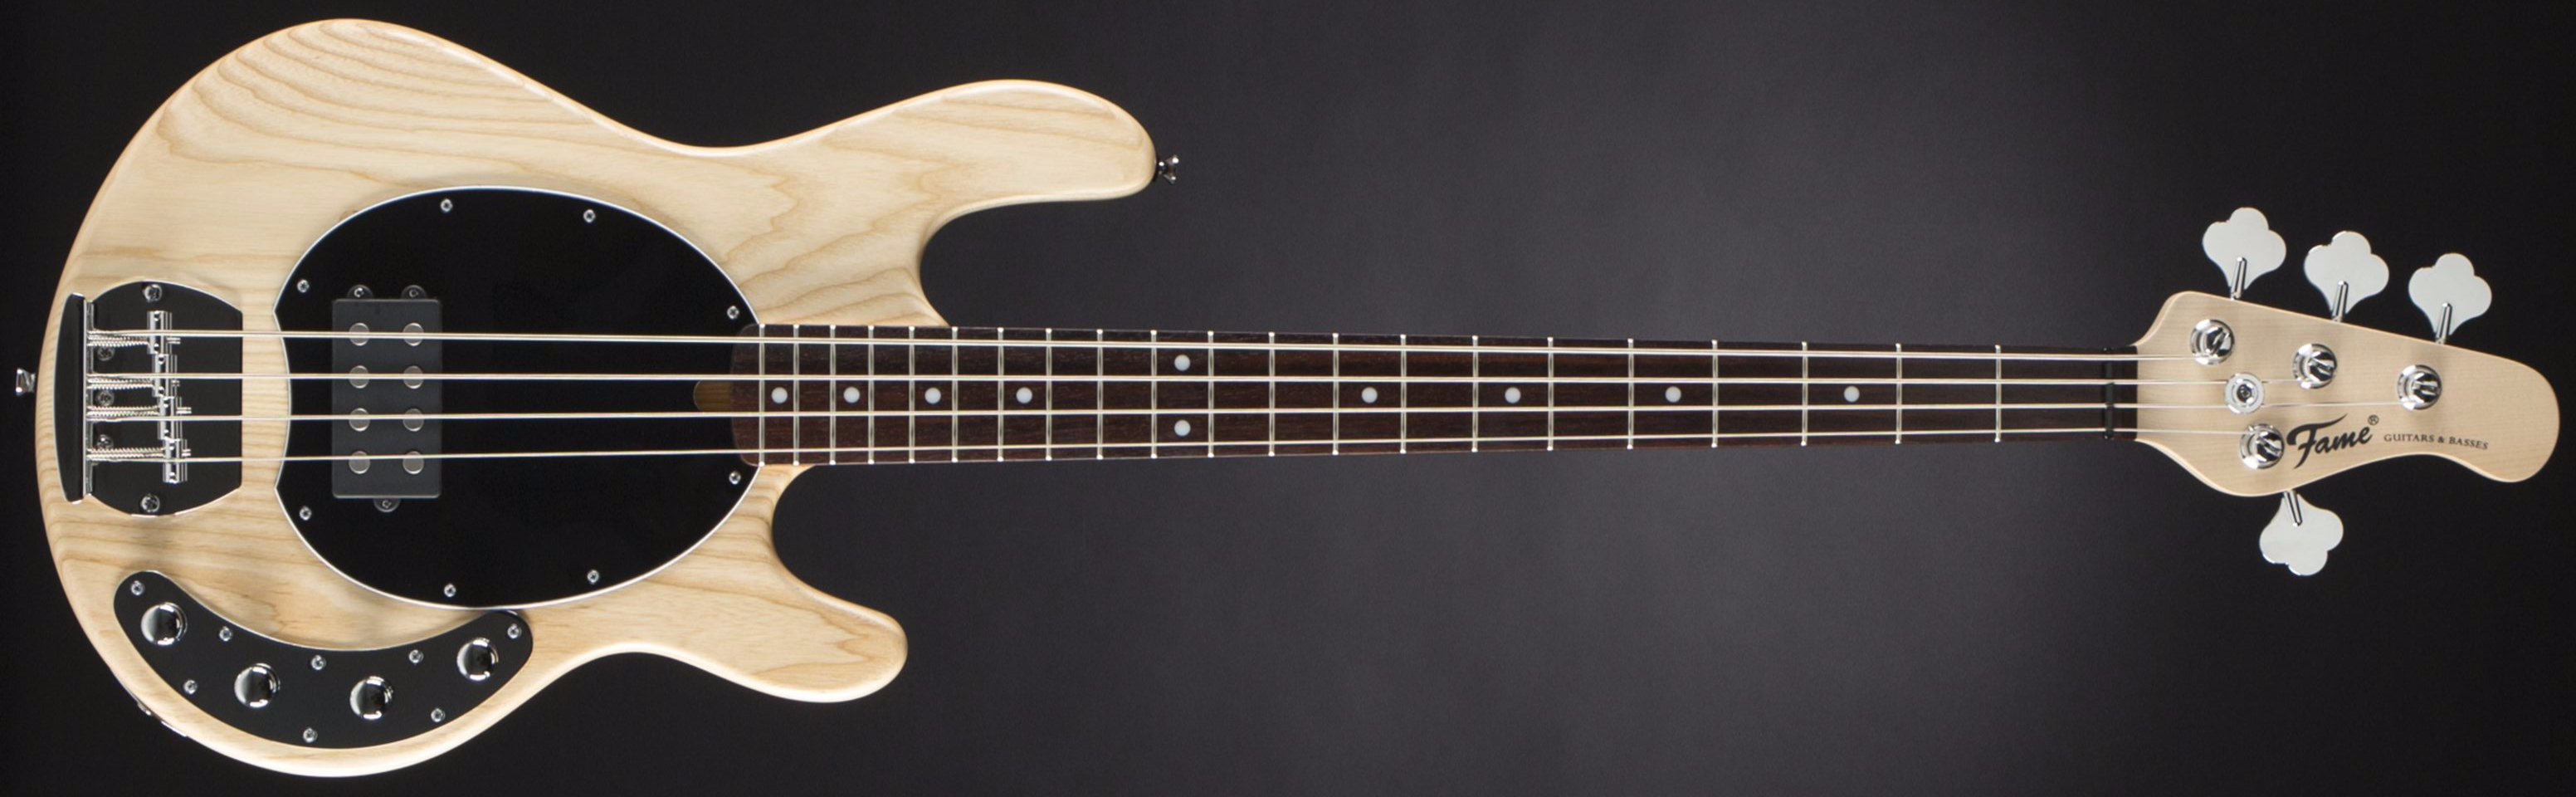 FAME MM 400 Ash RW Natural Satin